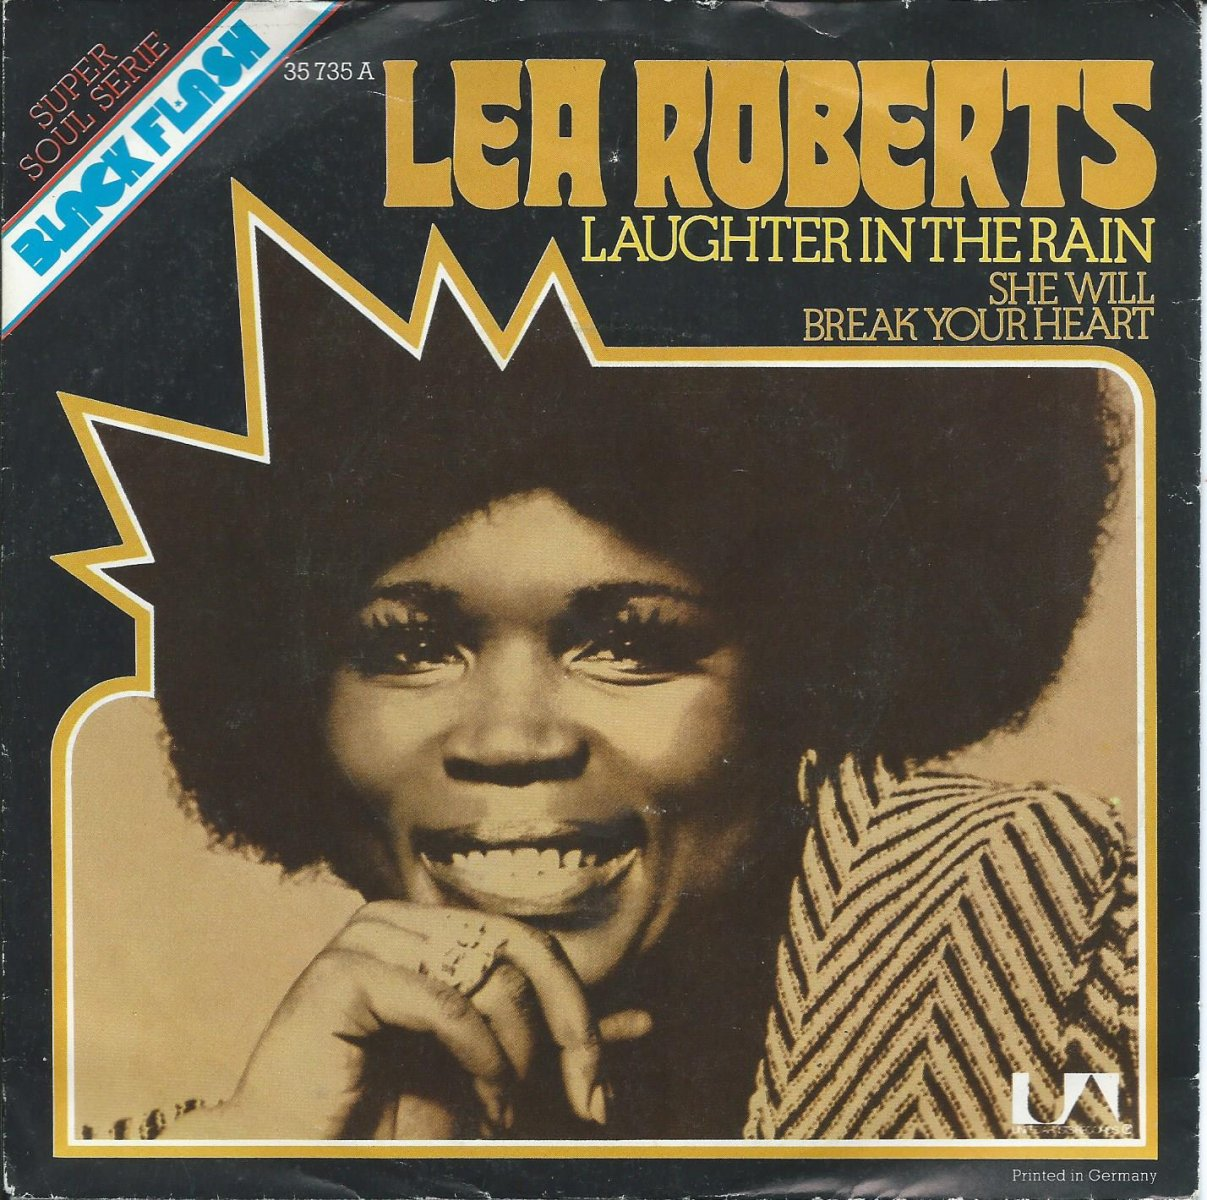 LEA ROBERTS ‎/ LAUGHTER IN THE RAIN / SHE WILL BREAK YOUR HEART (7